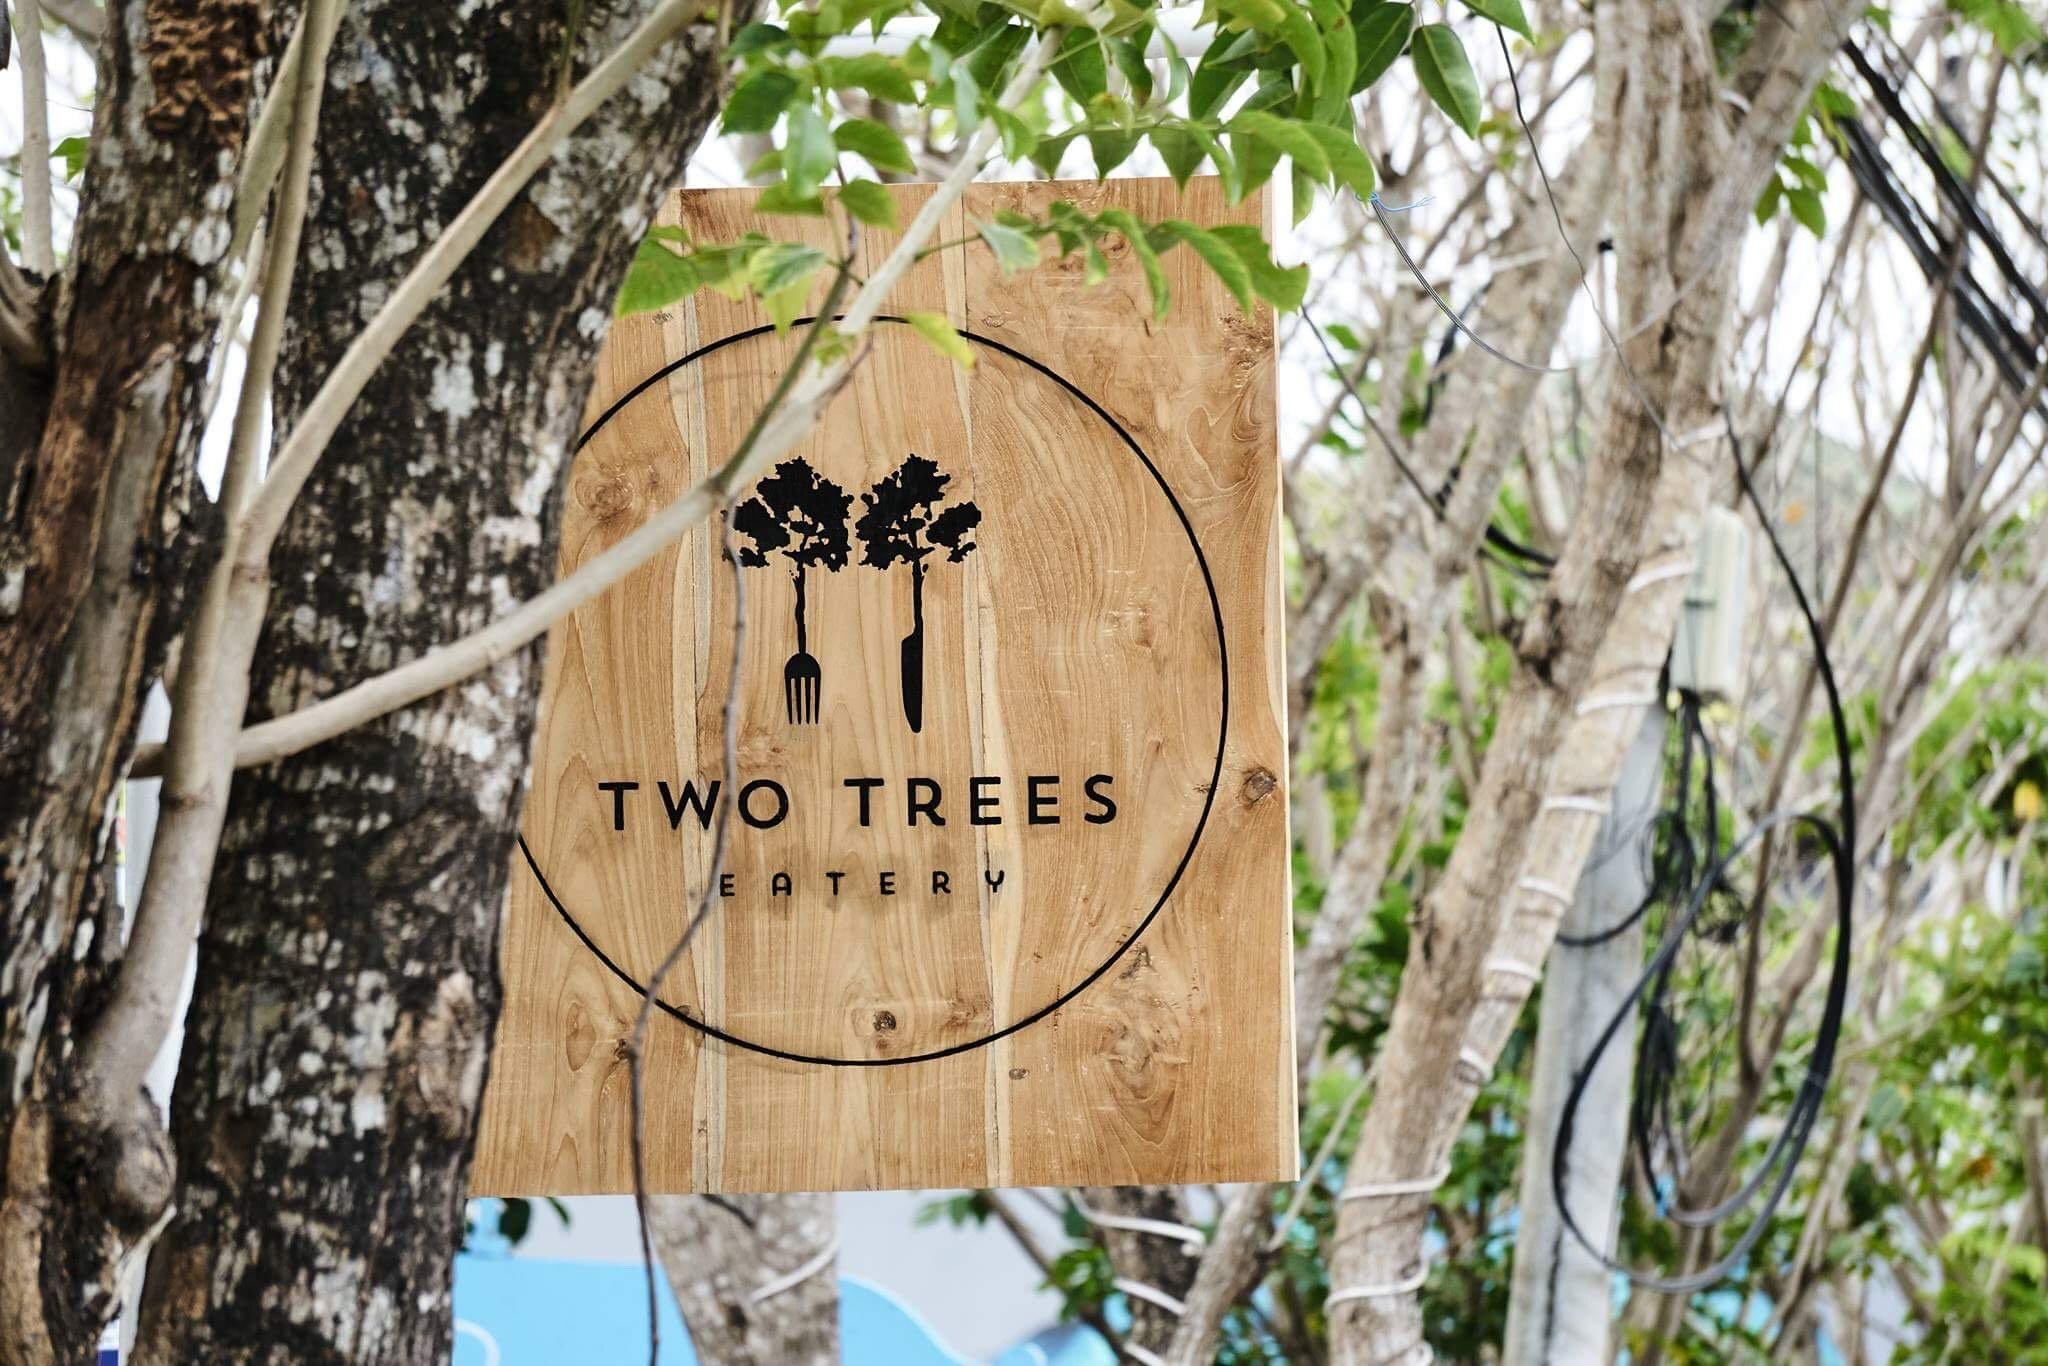 Two Trees Eatery